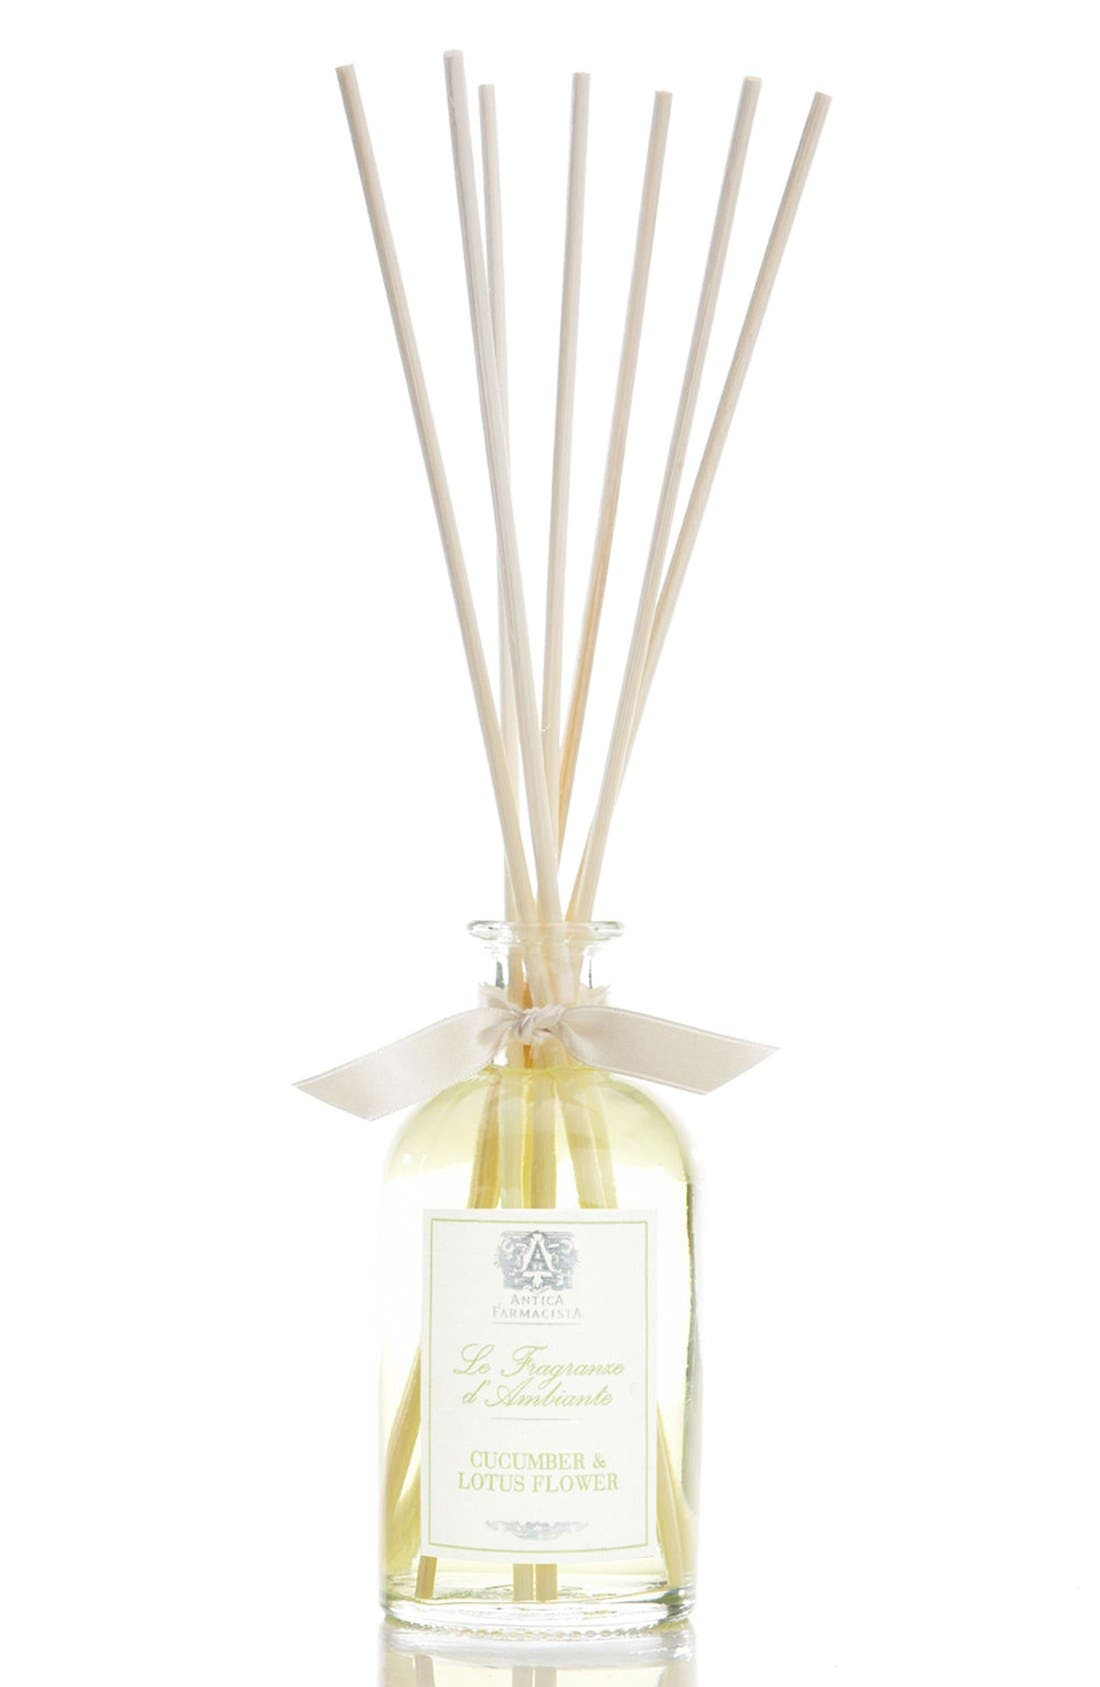 Alternate Image 1 Selected - Antica Farmacista 'Cucumber & Lotus Flower' Home Ambiance Perfume (3.3 oz.)